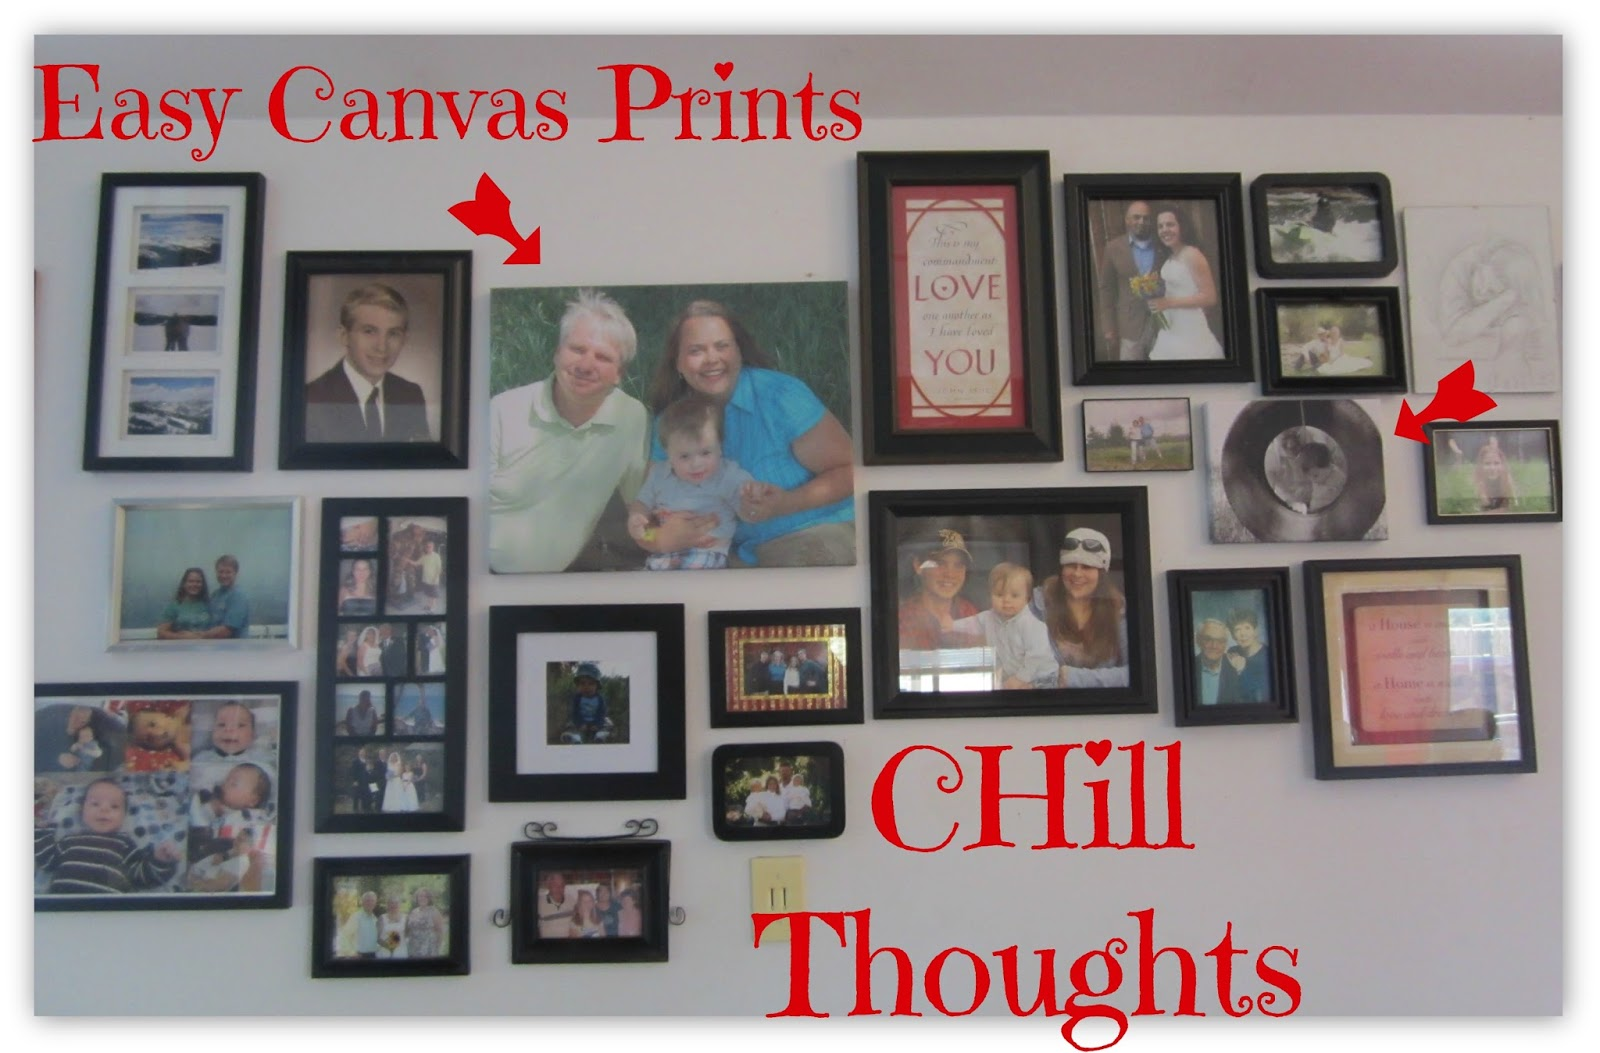 Canvas Prints - Not Just for Home Decor